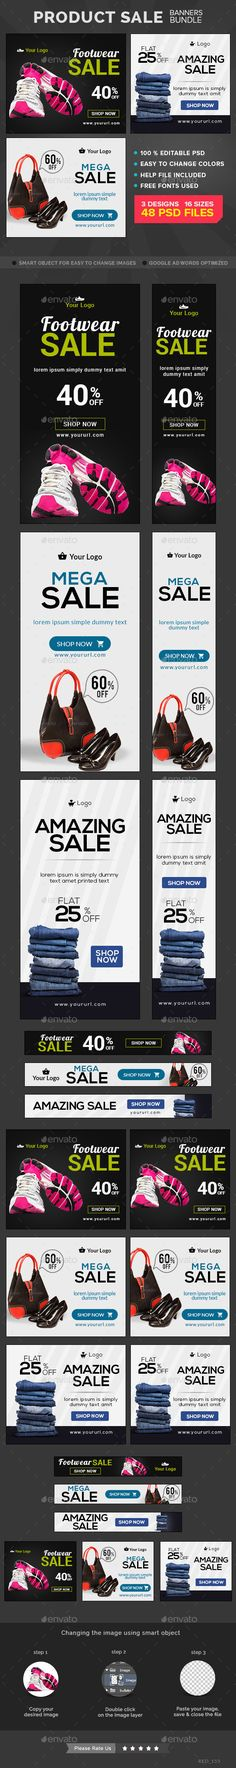 Product Sale Banners Bundle Templates #design Download: http://graphicriver.net/item/product-sale-banners-bundle/11342239?ref=ksioks